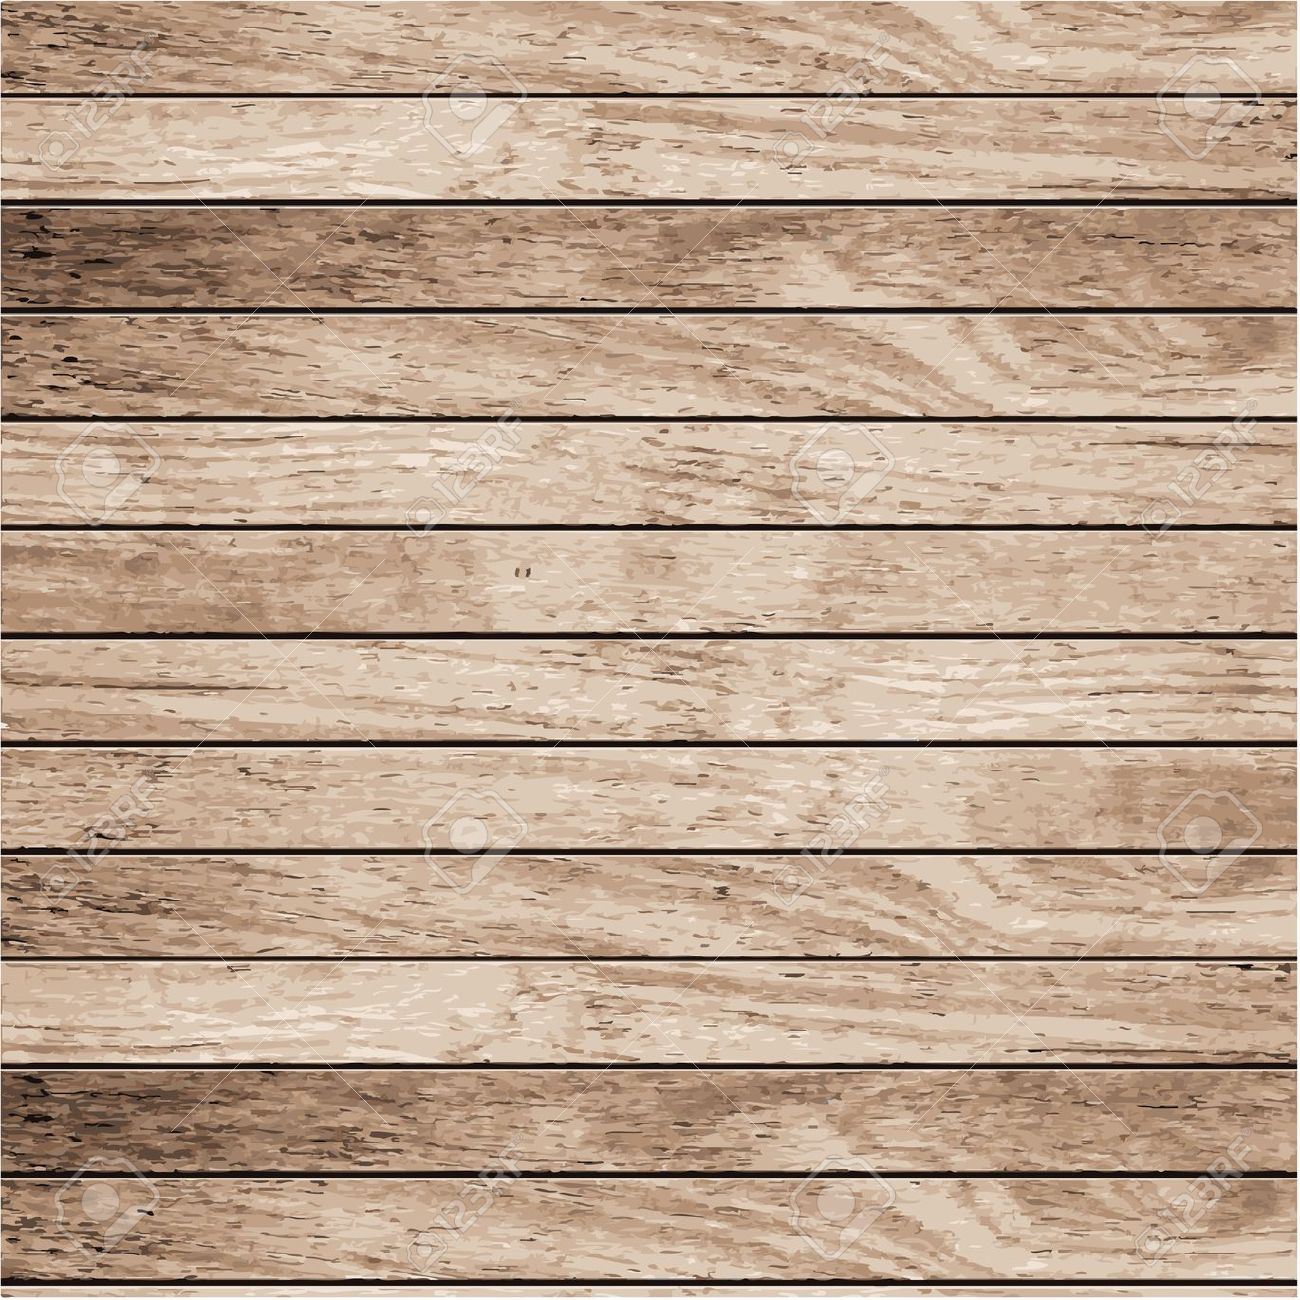 Weathered wood clipart 20 free cliparts download images for Legno chiaro texture